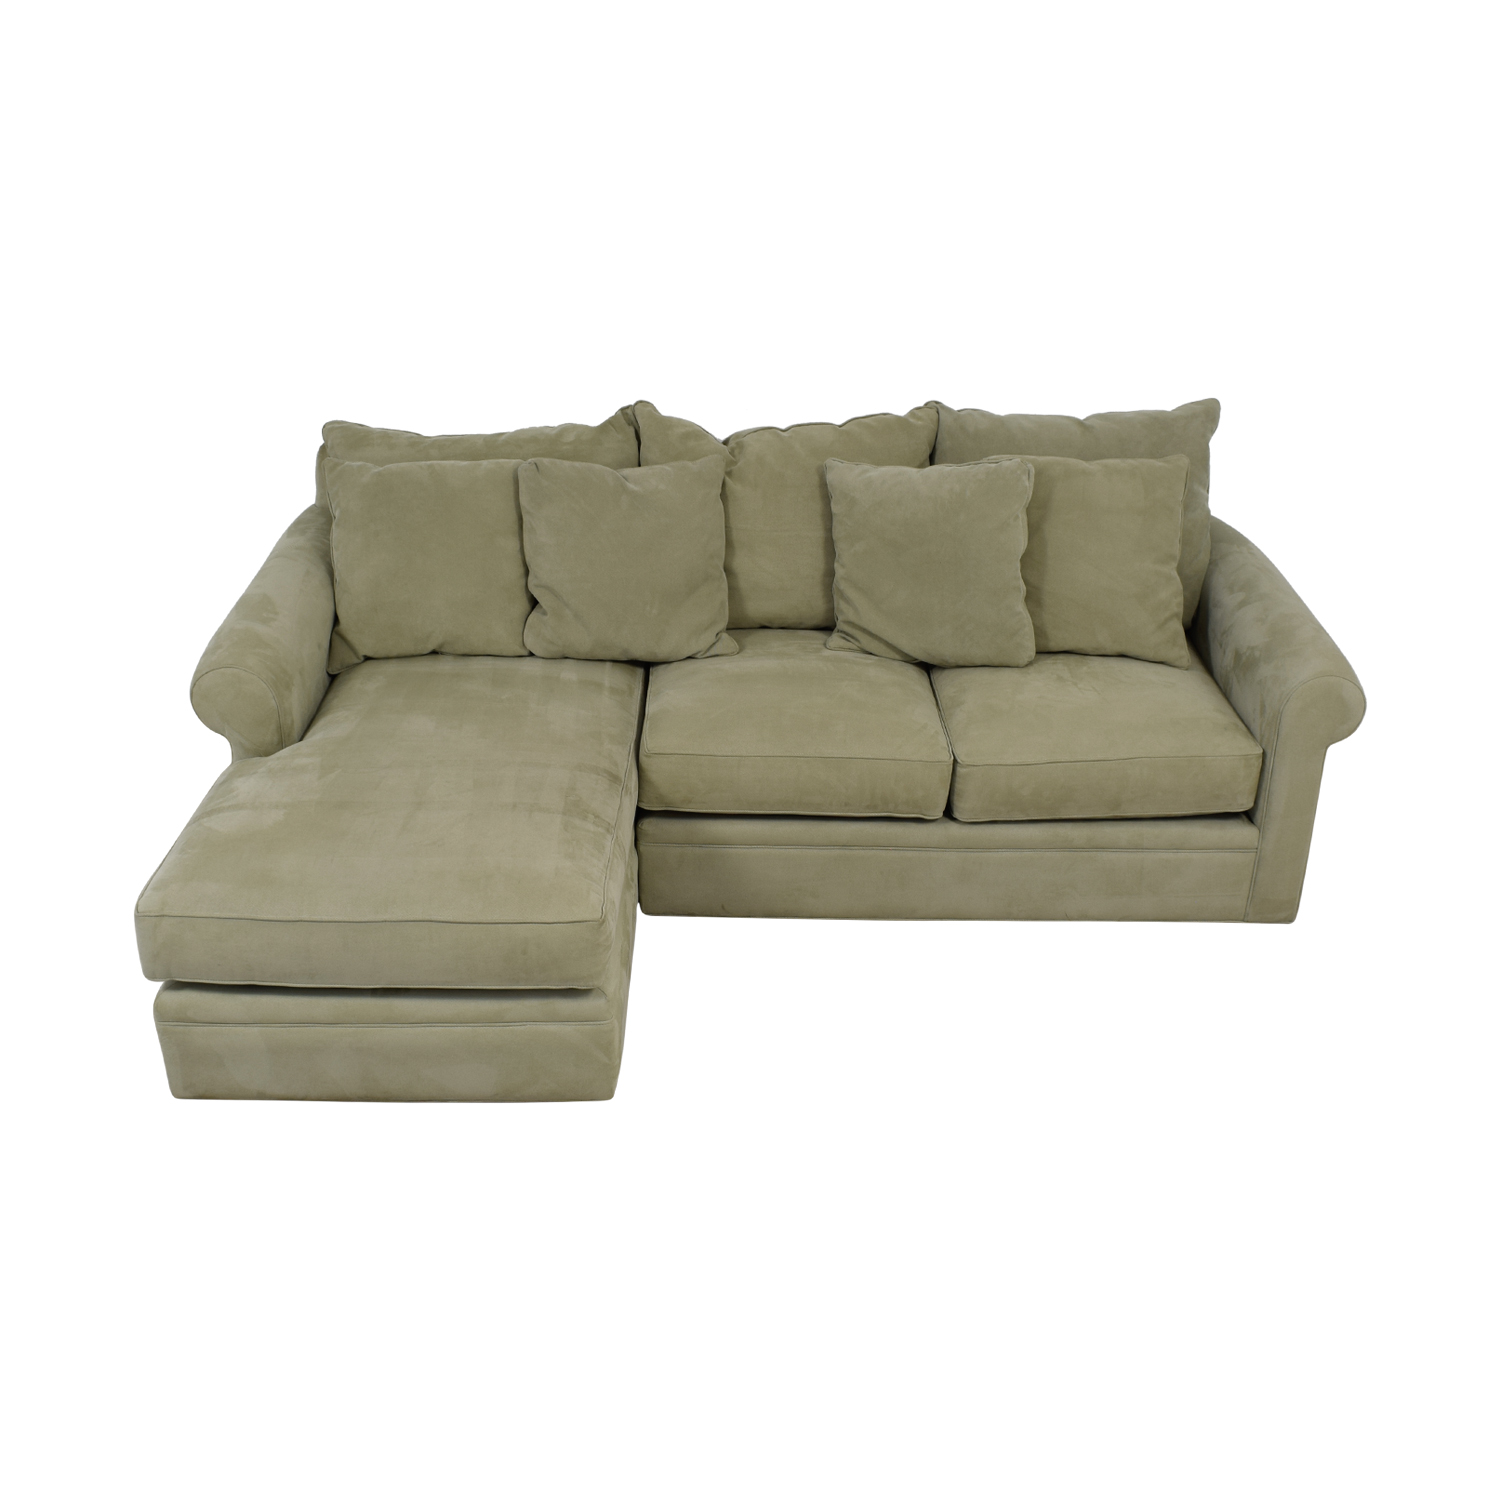 Modern Concepts Doss II Grey Chaise Sectional sale